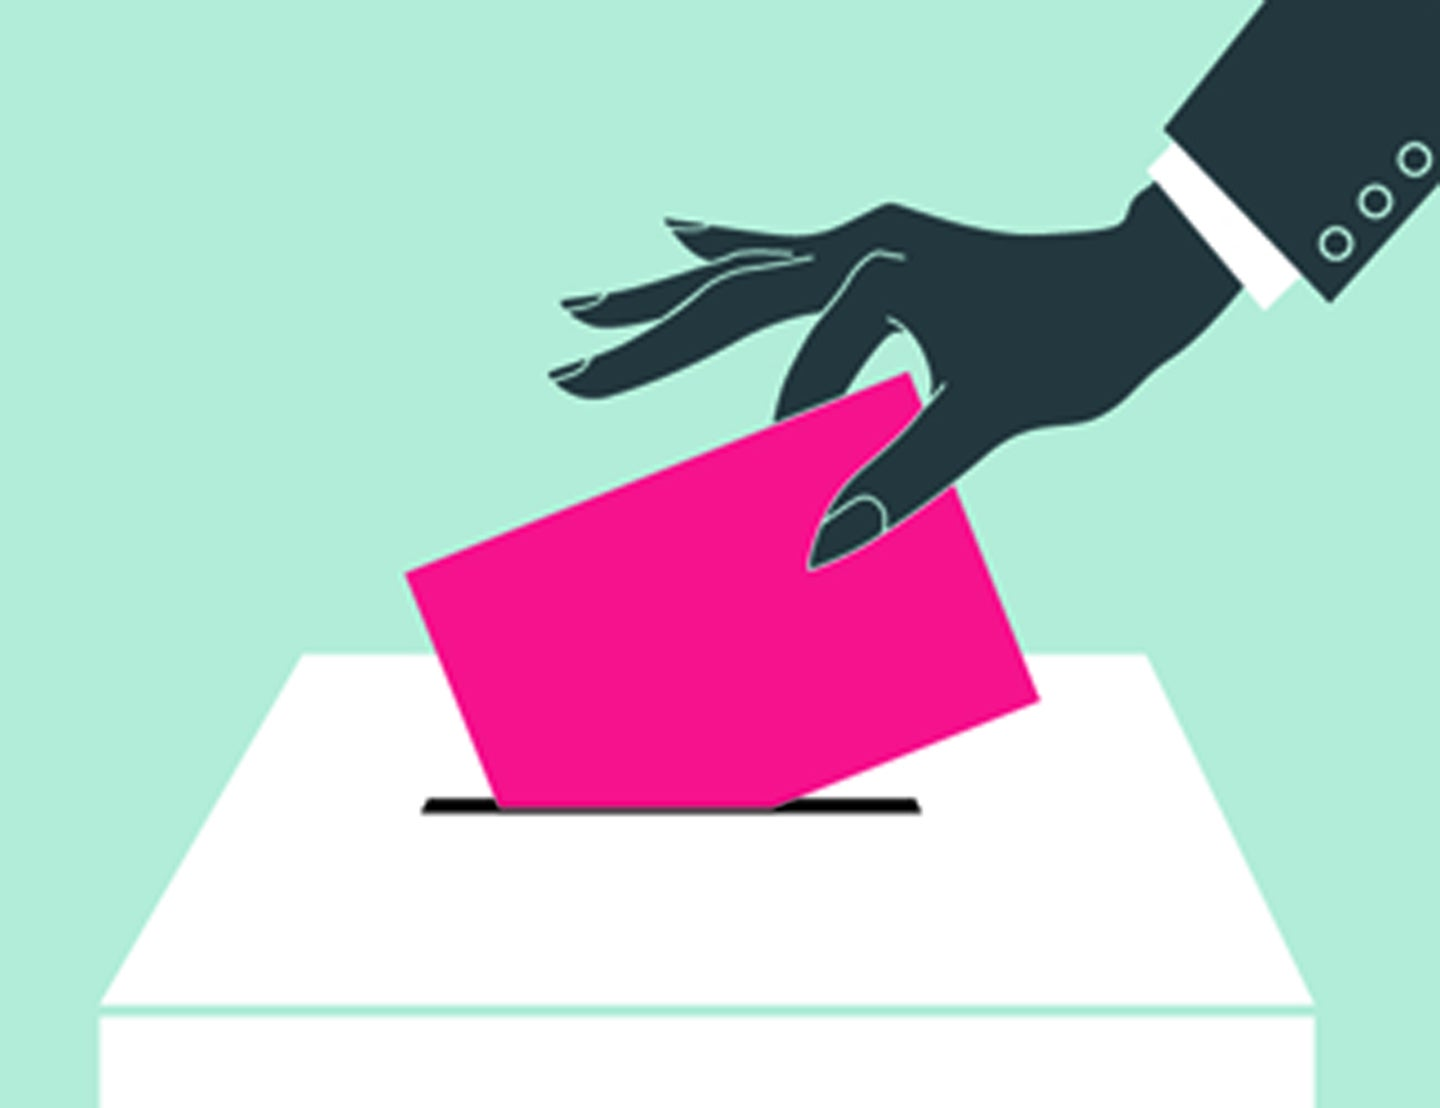 An illustration of a hand dropping a pink envelope into a box